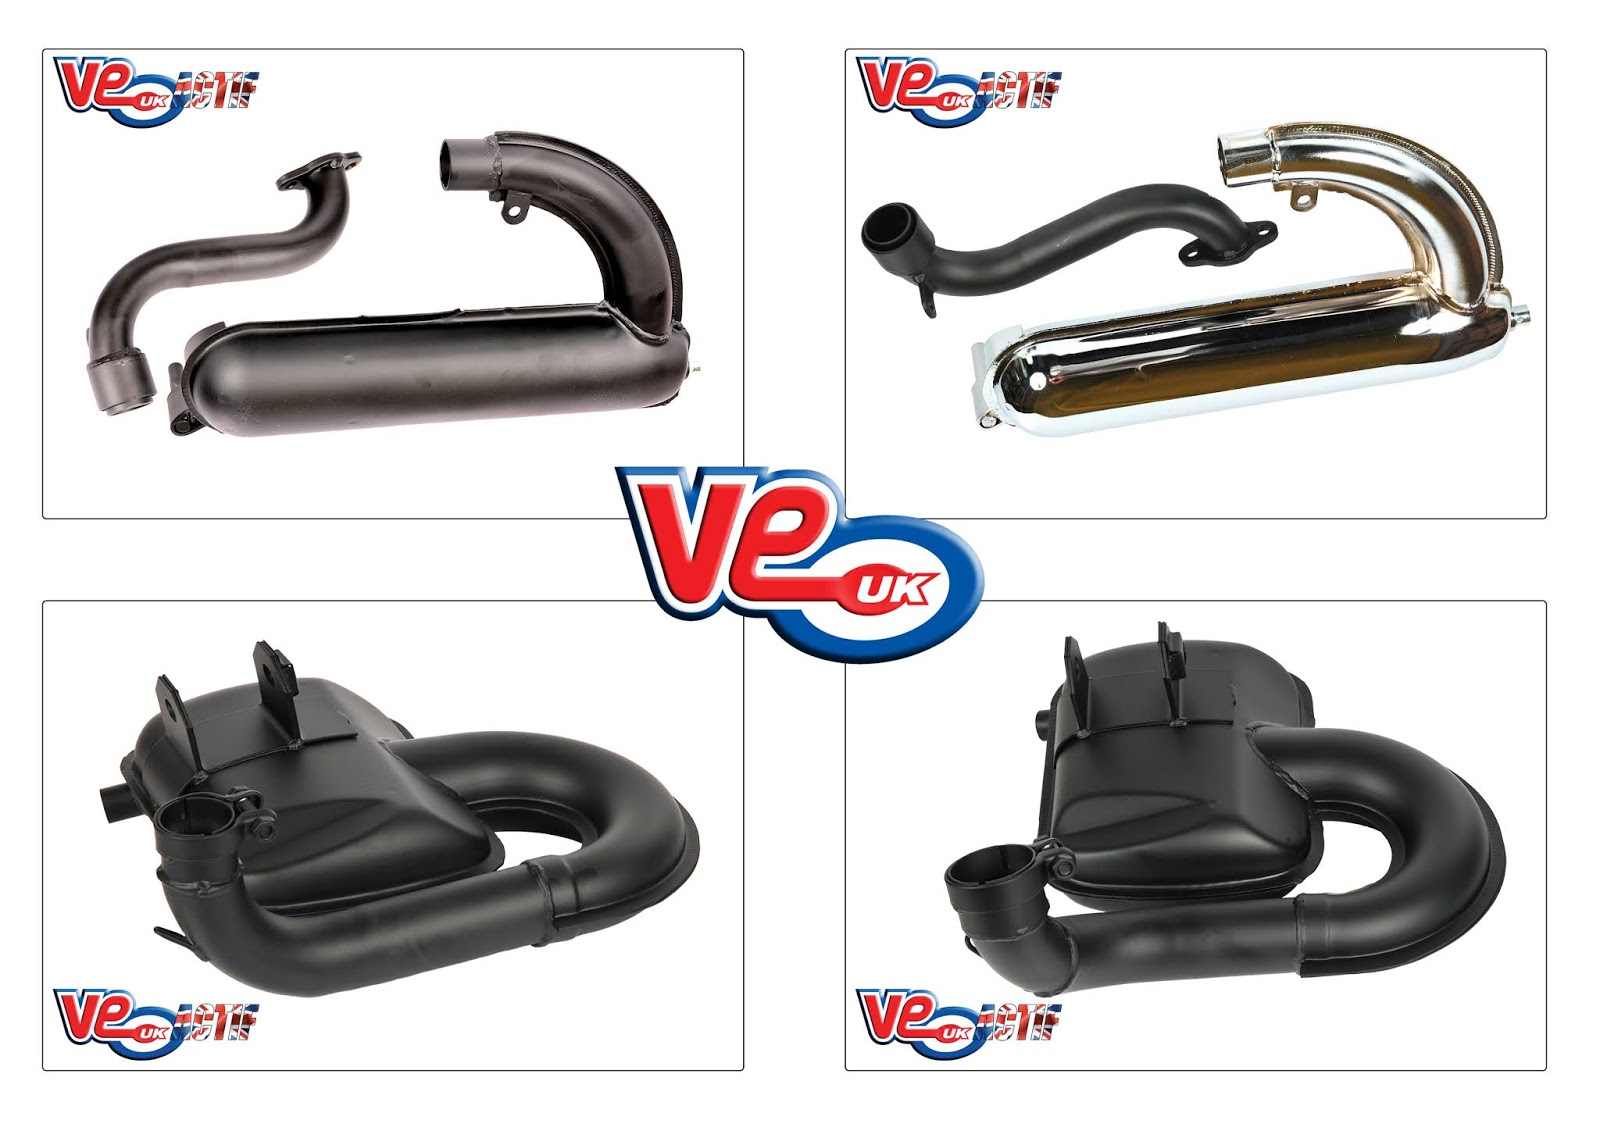 "NEW - VE Actif Vespa ""Road Race"" Exhaust Systems"